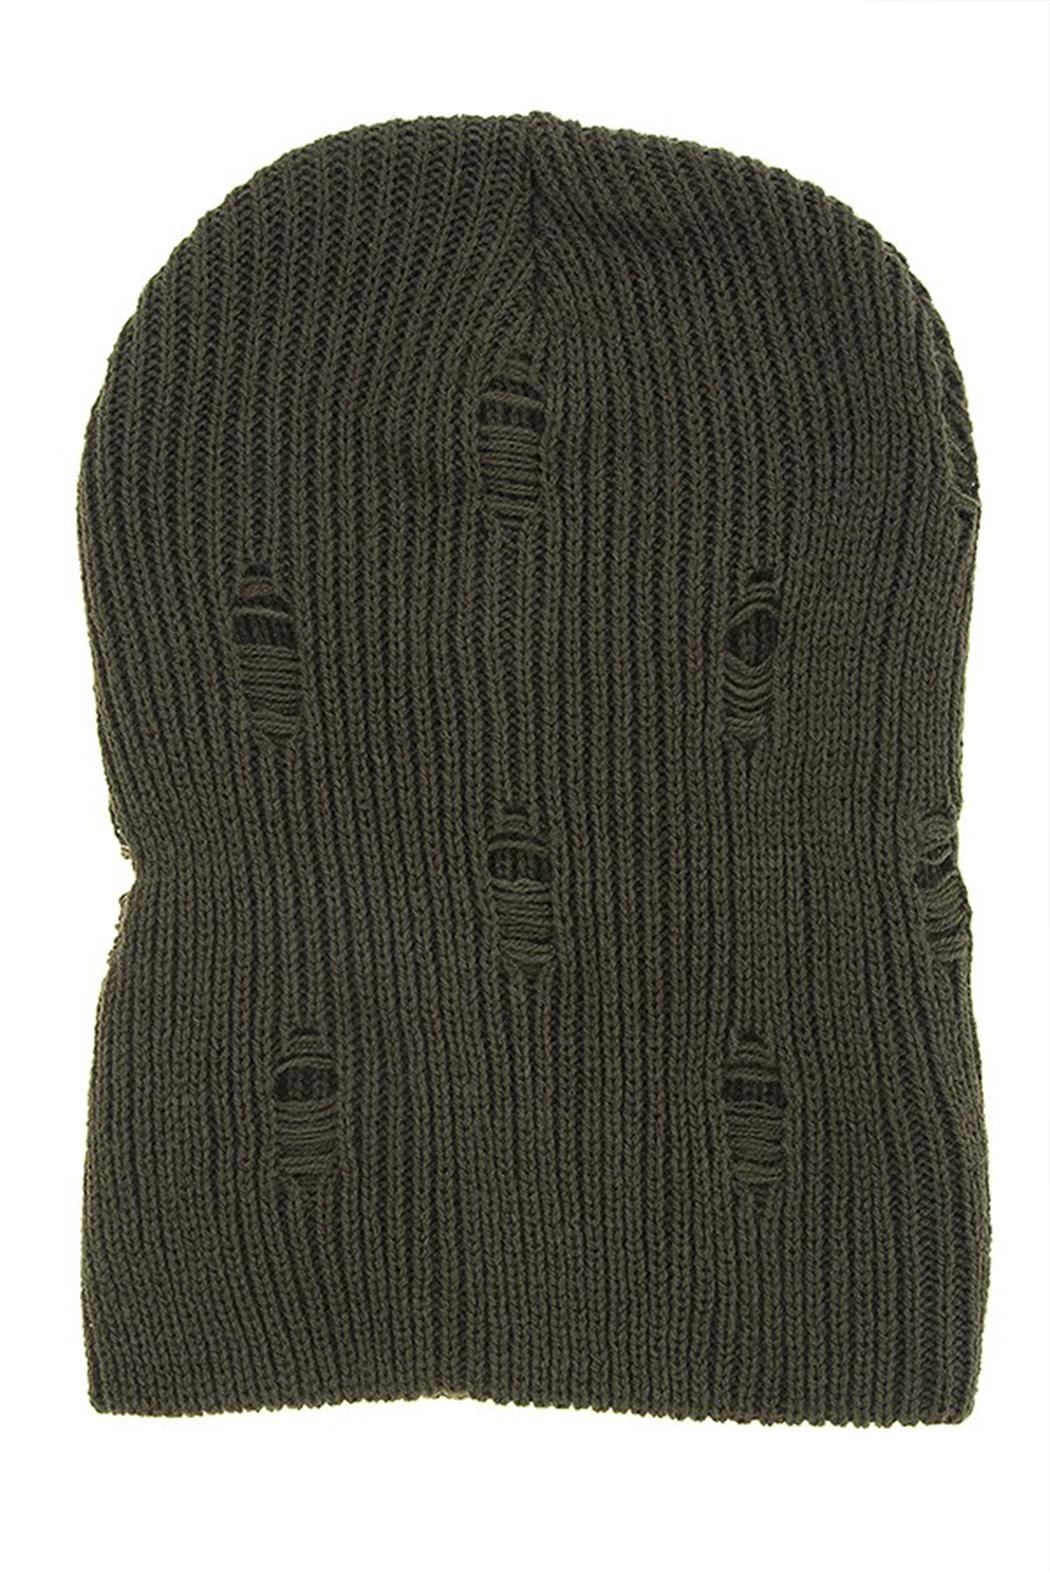 ENKYN Distressed Beanie - Front Cropped Image